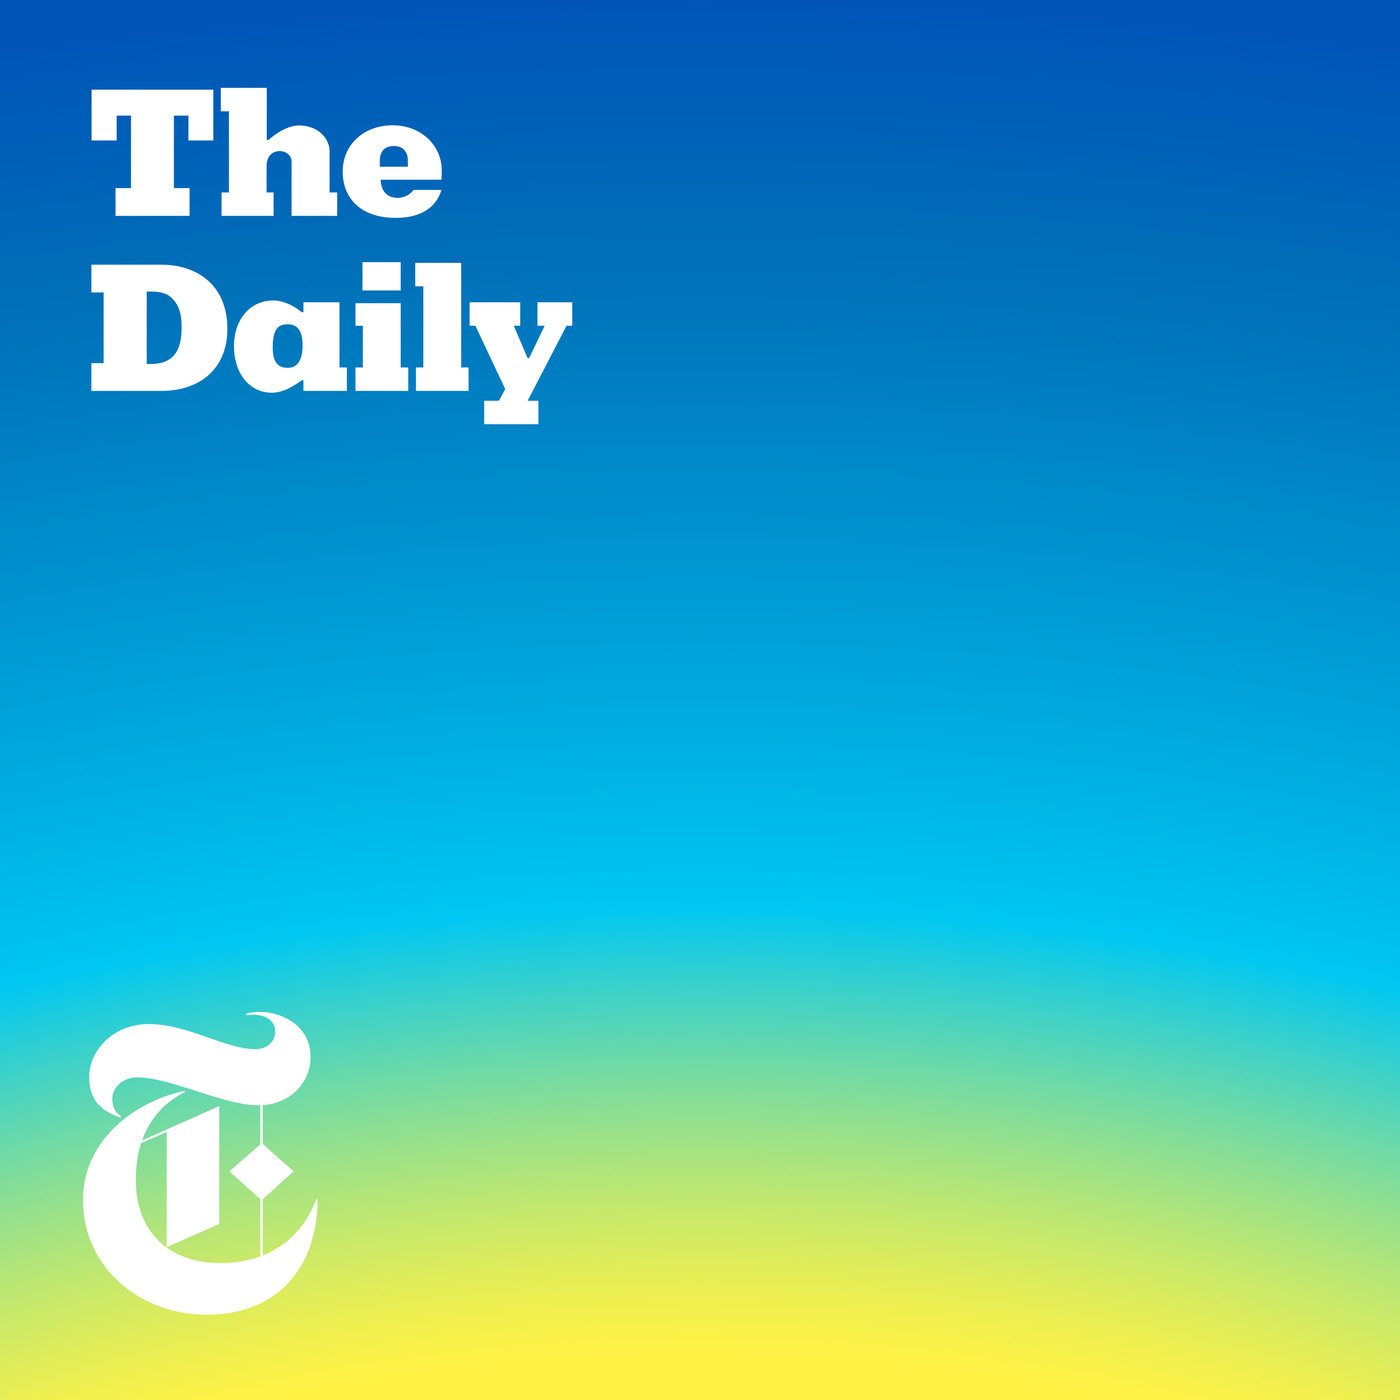 The Daily - Powered by New York Times journalism